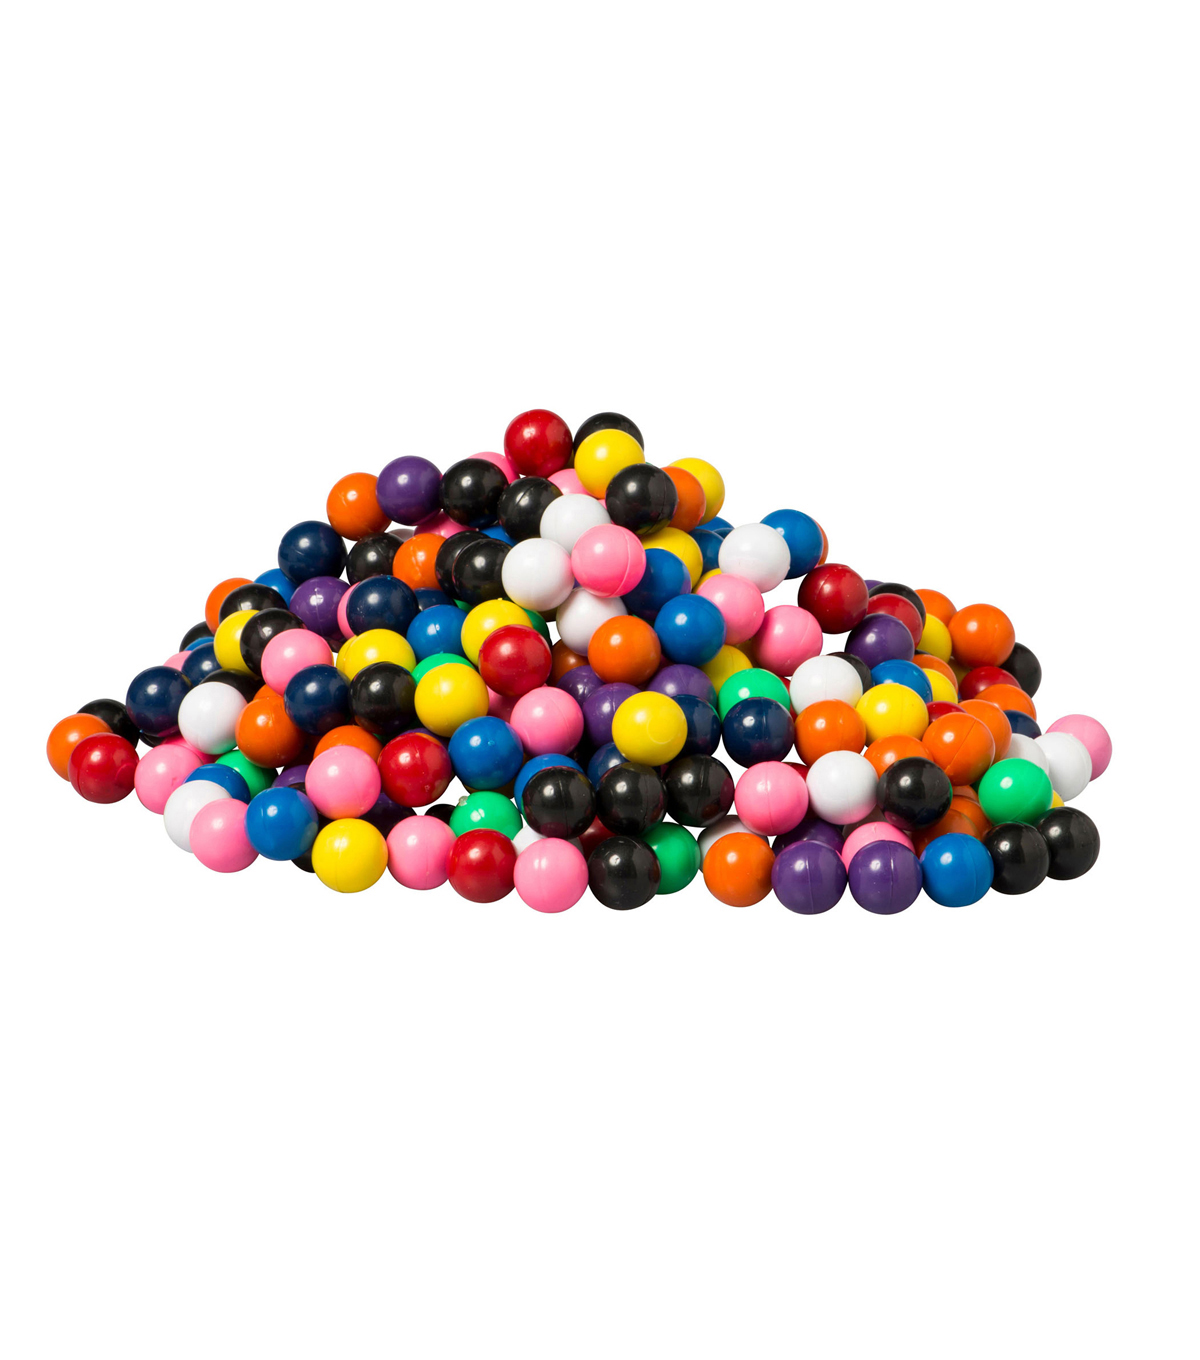 Solid-Colored Magnet Marbles (400 Count)